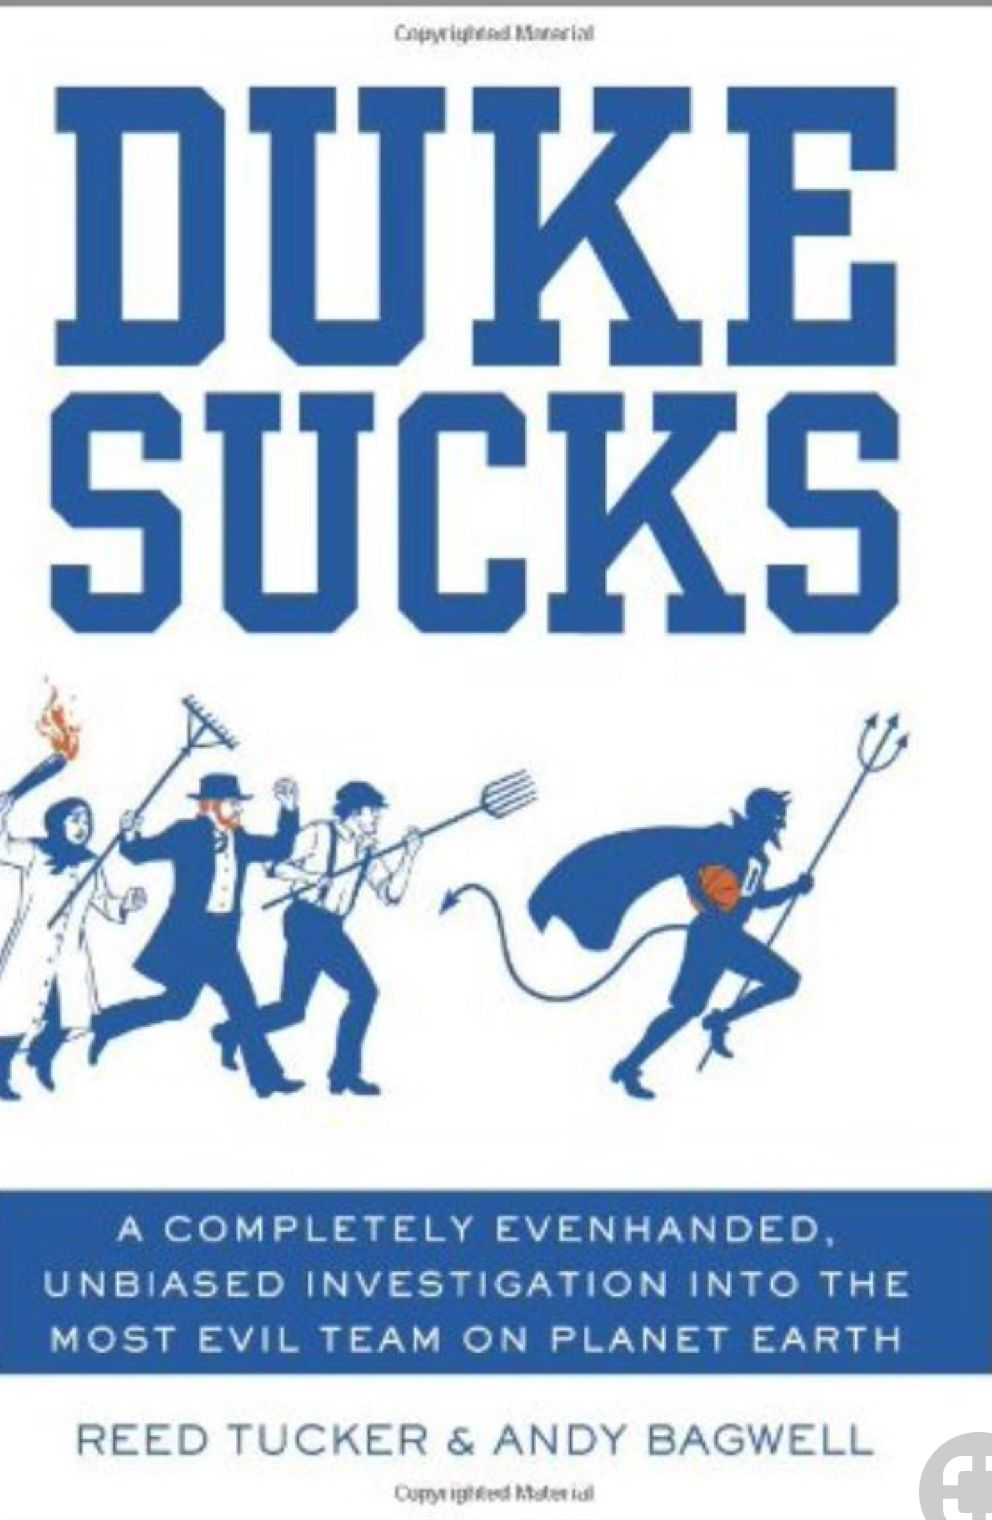 Pin by Liam Pryce on TAR HEELS! Book worth reading, Duke